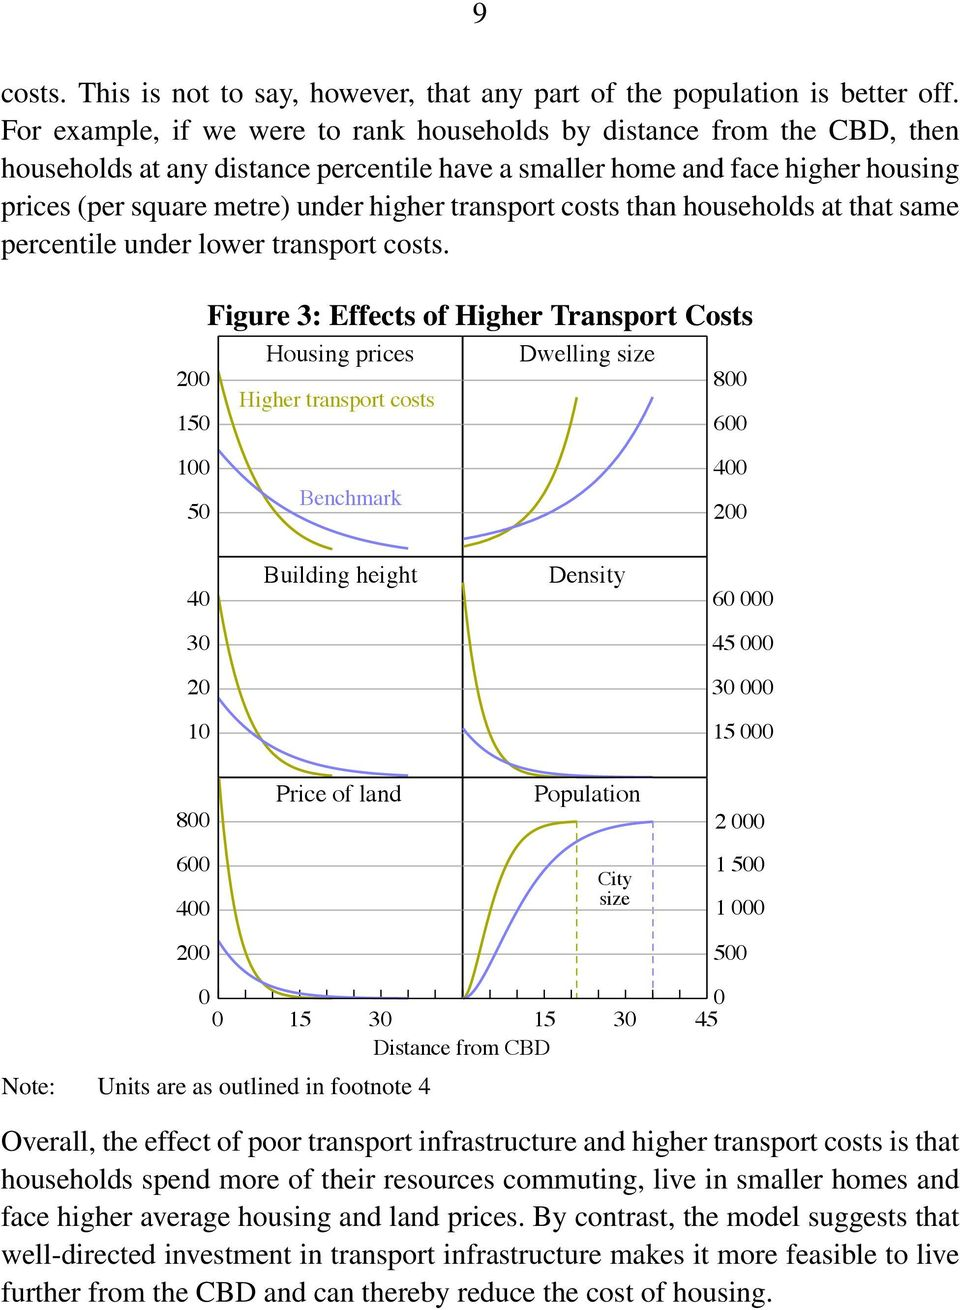 transport costs than households at that same percentile under lower transport costs.